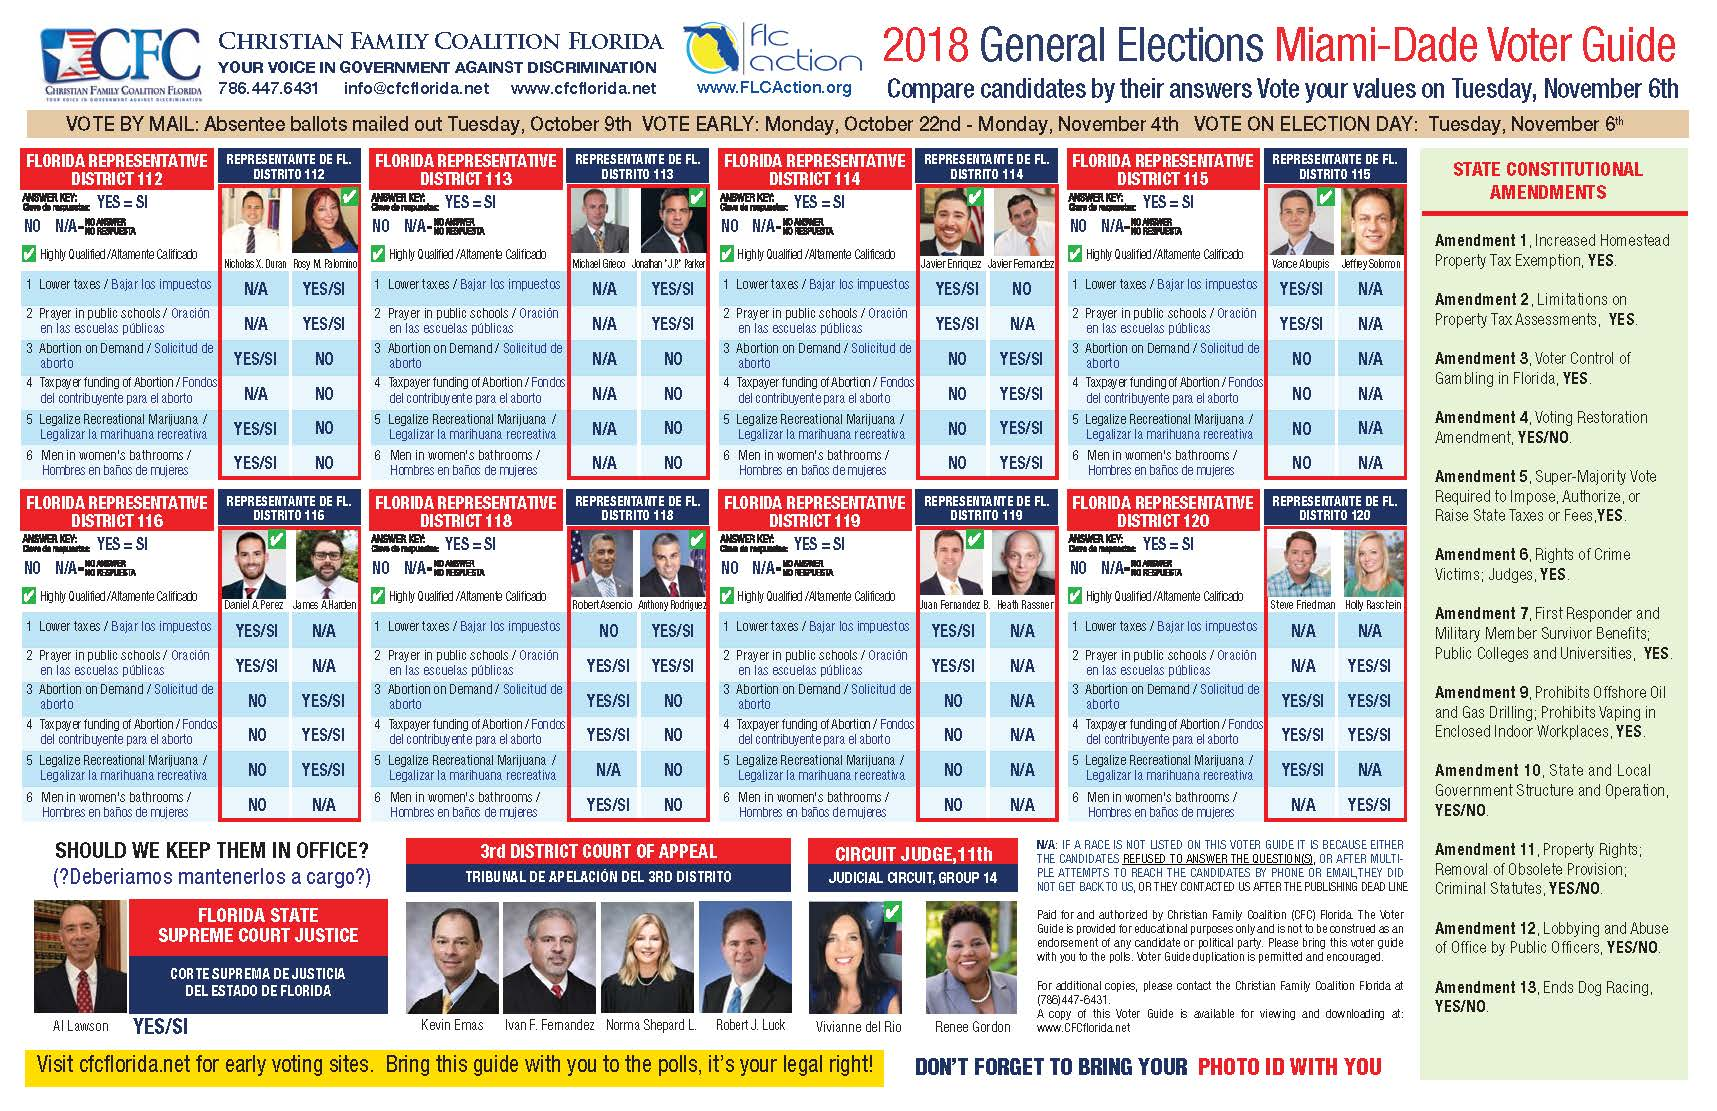 2018-miami-dade-voter-guide_Page_2